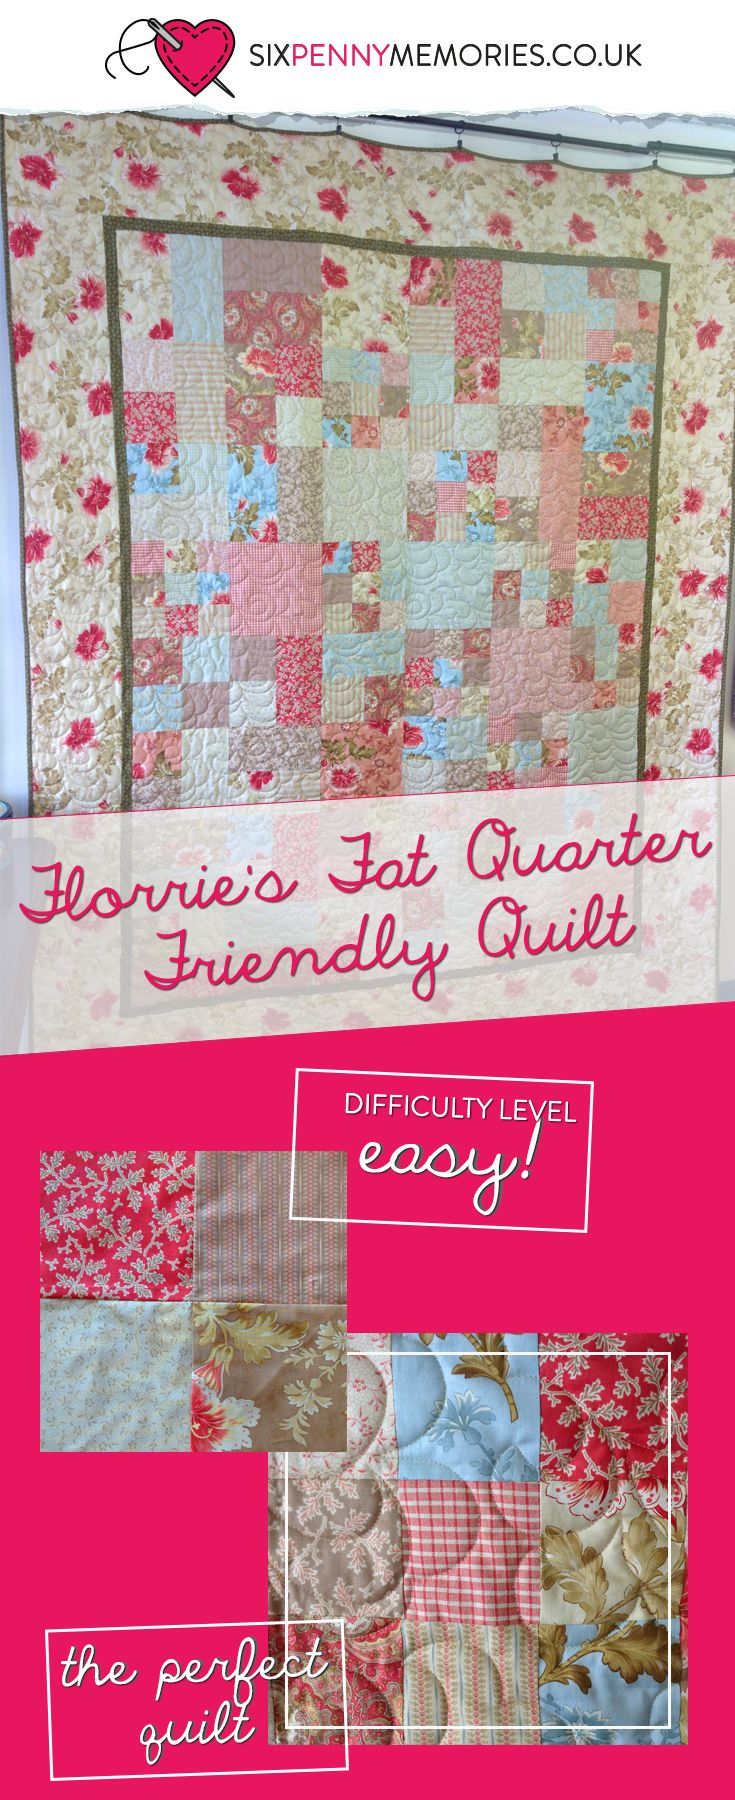 This pattern to make a beautiful quilt is perfect for beginners